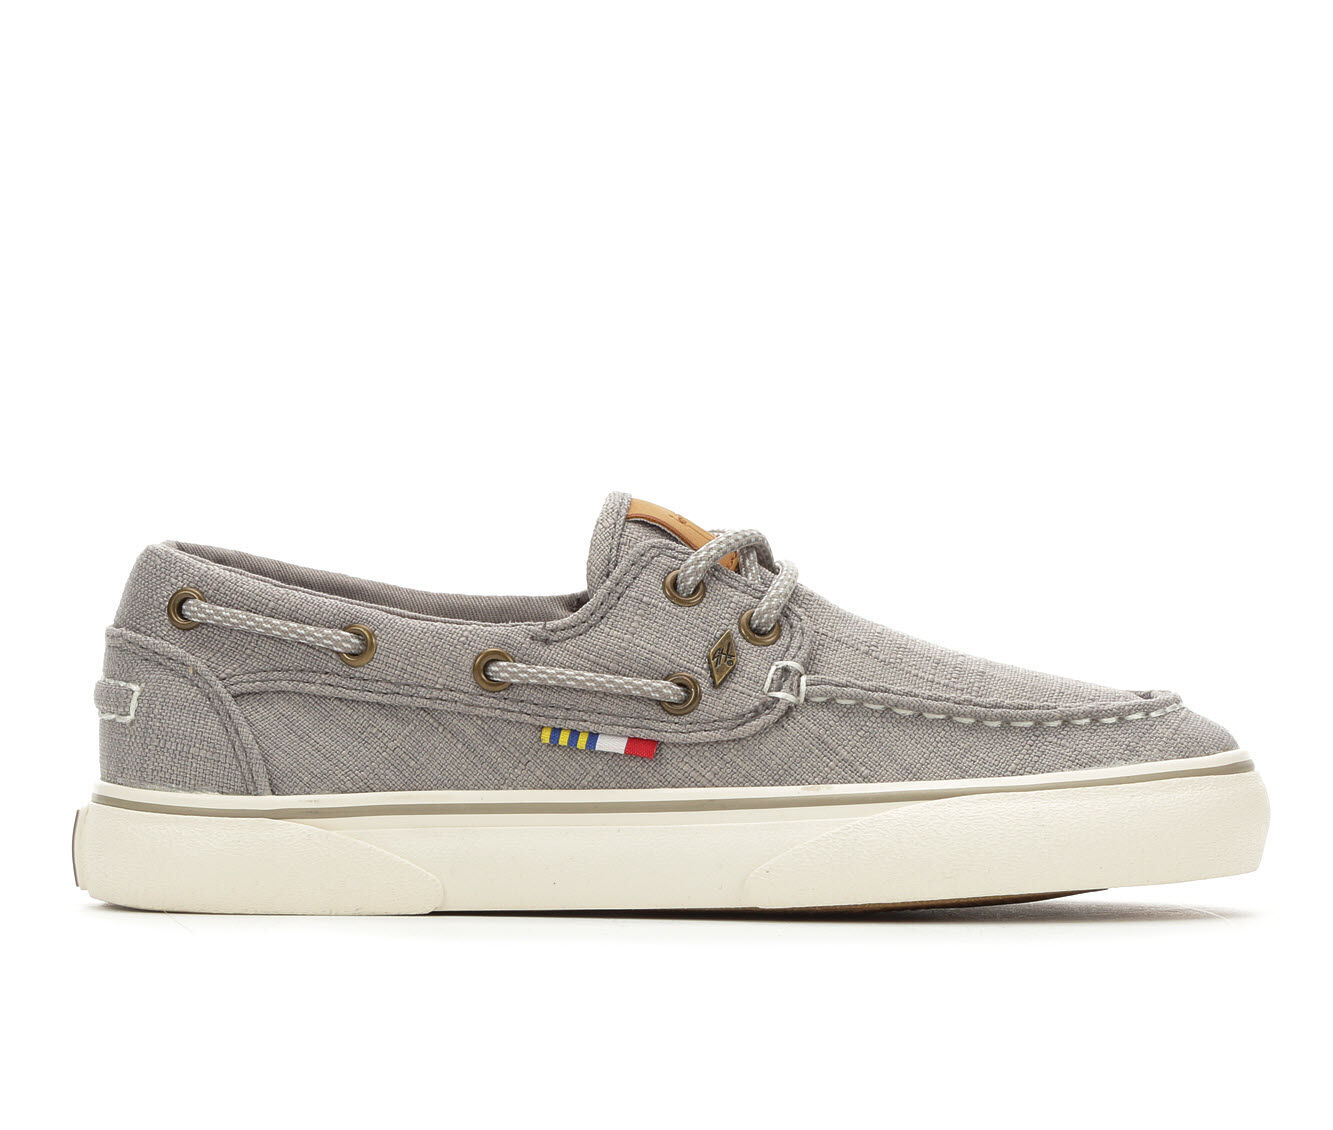 Women's Guy Harvey Gulf Sneakers Grey/Off White